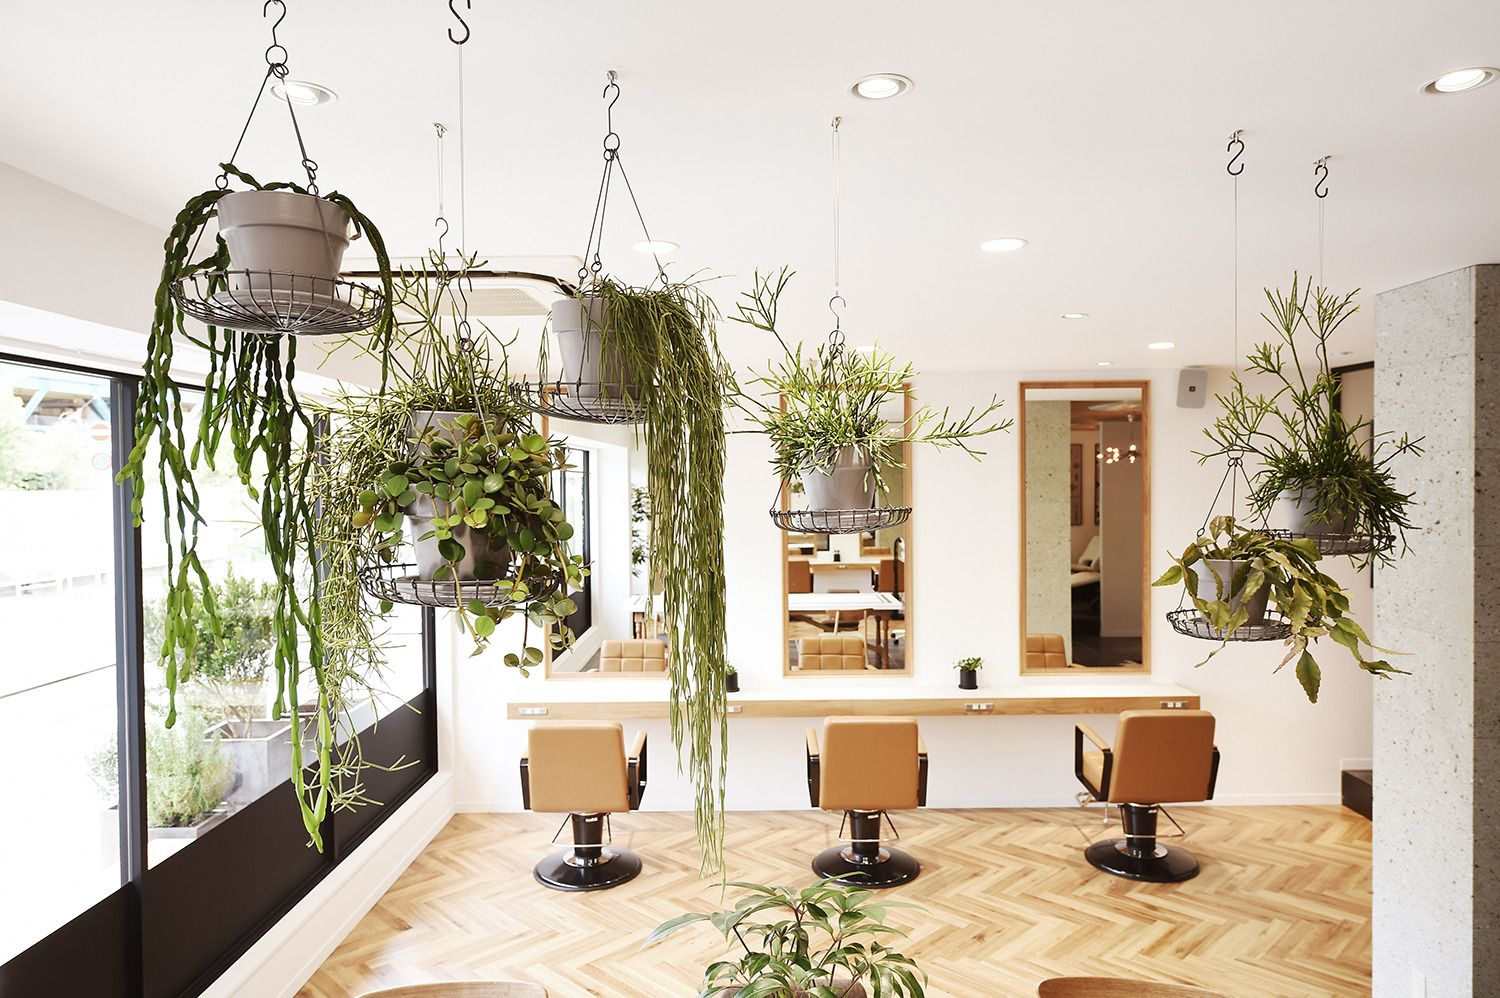 Team Modern Calls Out To An Sos At A Women S Shelter Salons Salon Interior Beauty Room